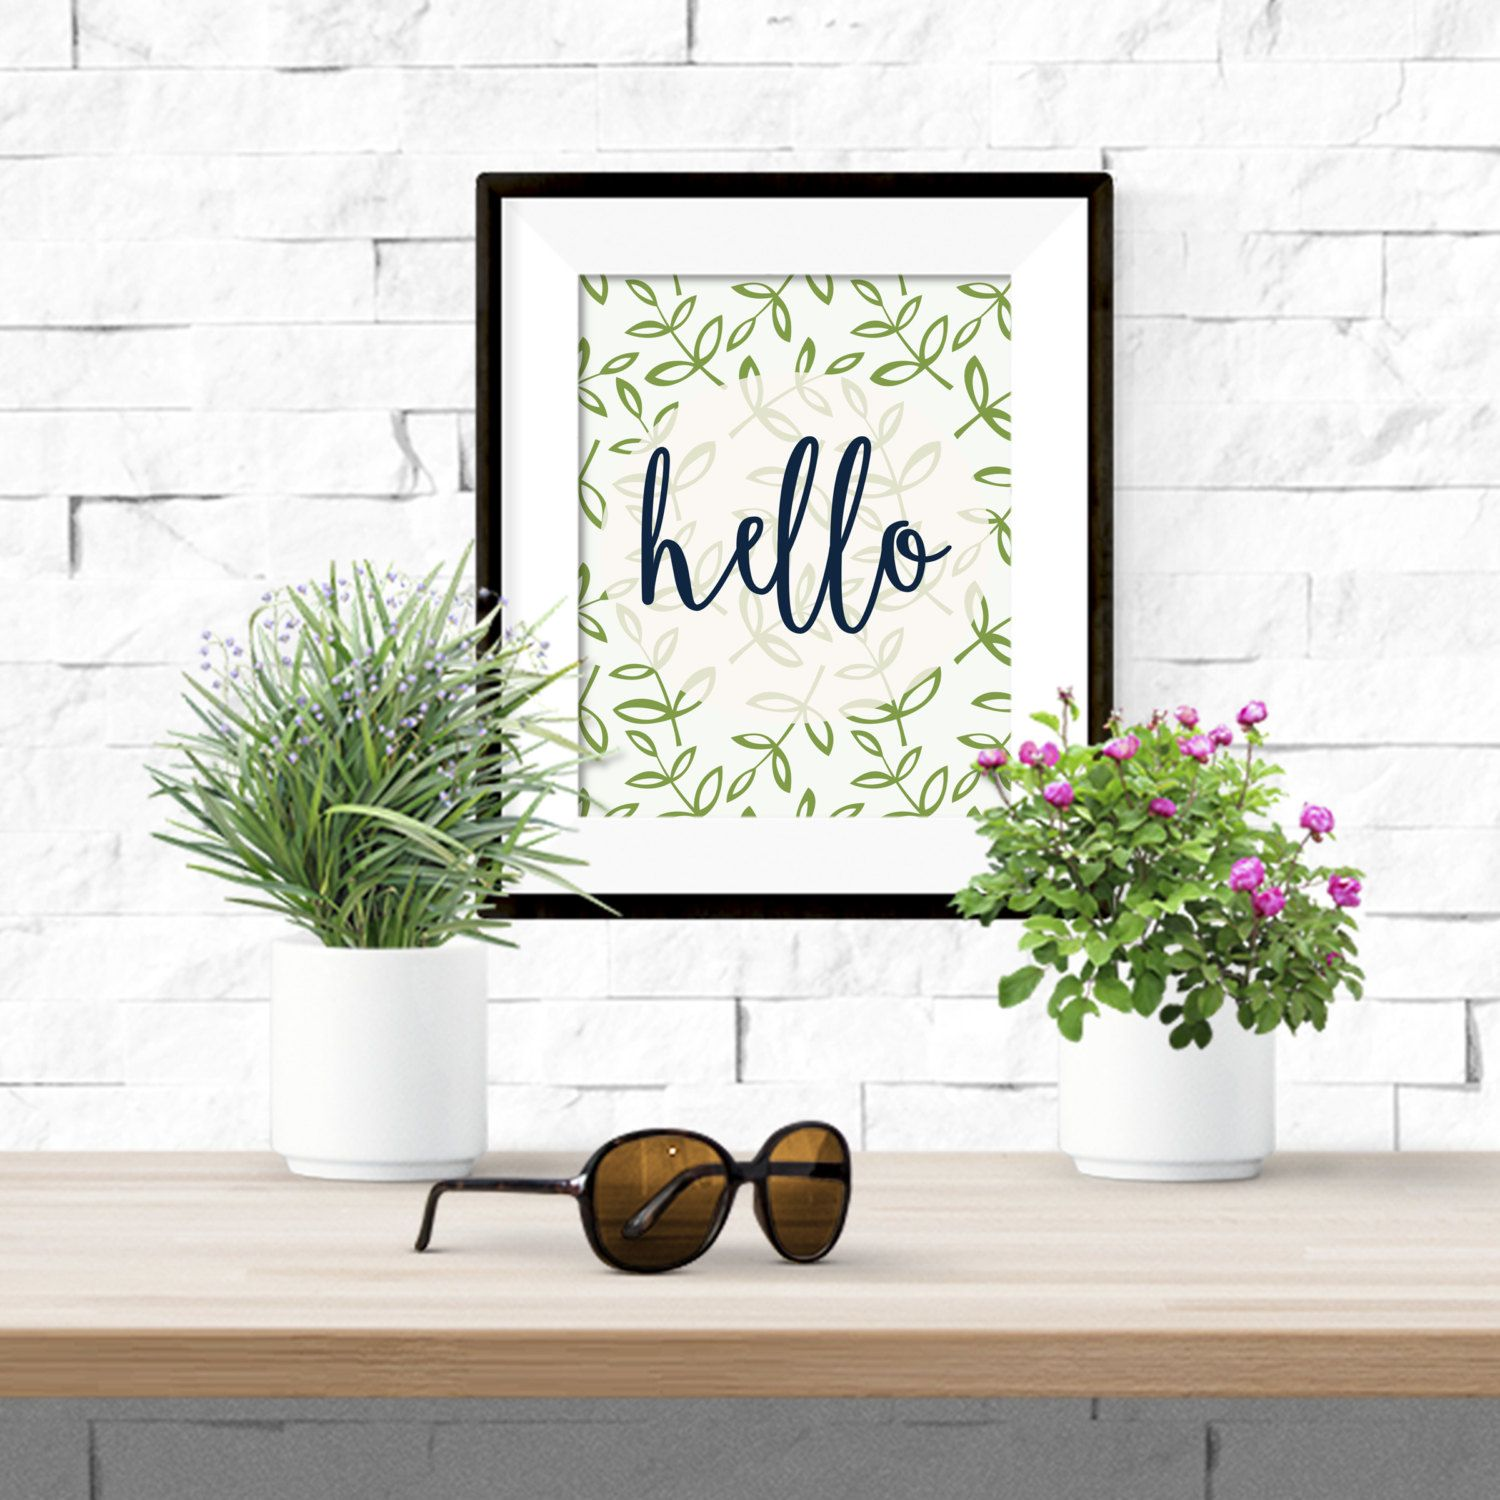 Hello Navy with Green Leaves Printable Artwork - 8x10 Digital Download by theorangeleaf on Etsy